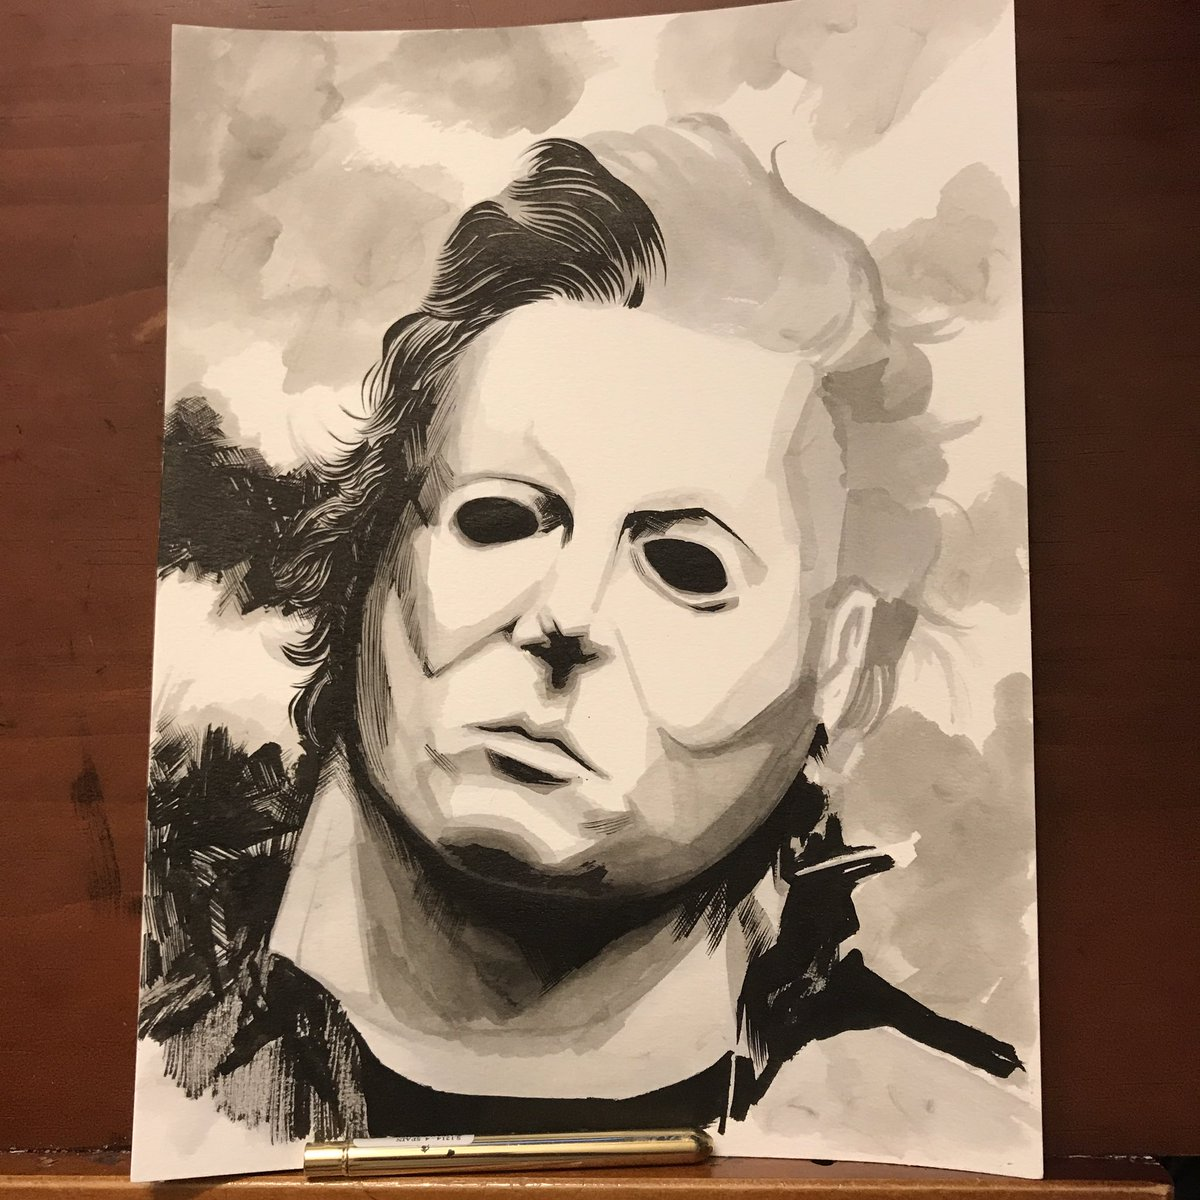 #michaelmyers #wip #commission just a warm up before I start some pages. #makecomics<br>http://pic.twitter.com/Qin2ov6P2S